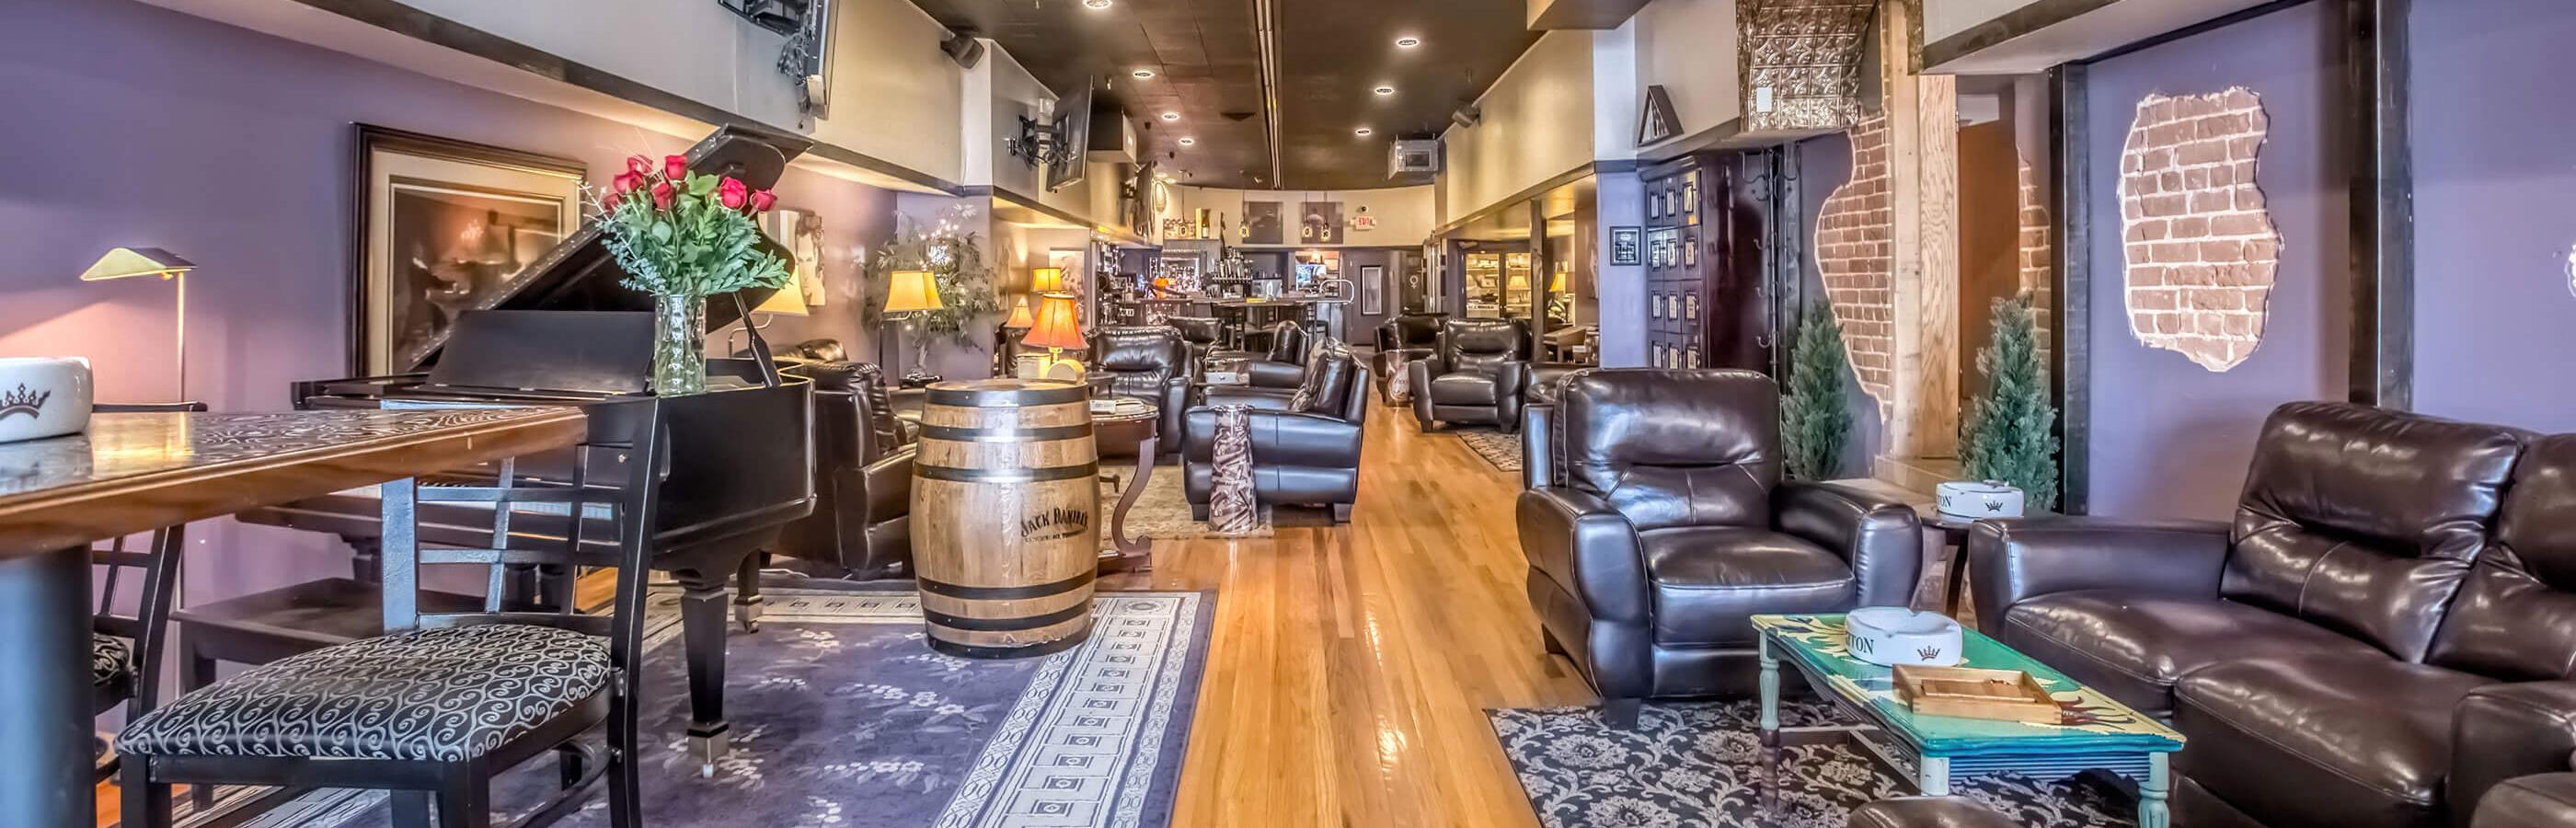 Interior of the downtown tinder box cigar lounge